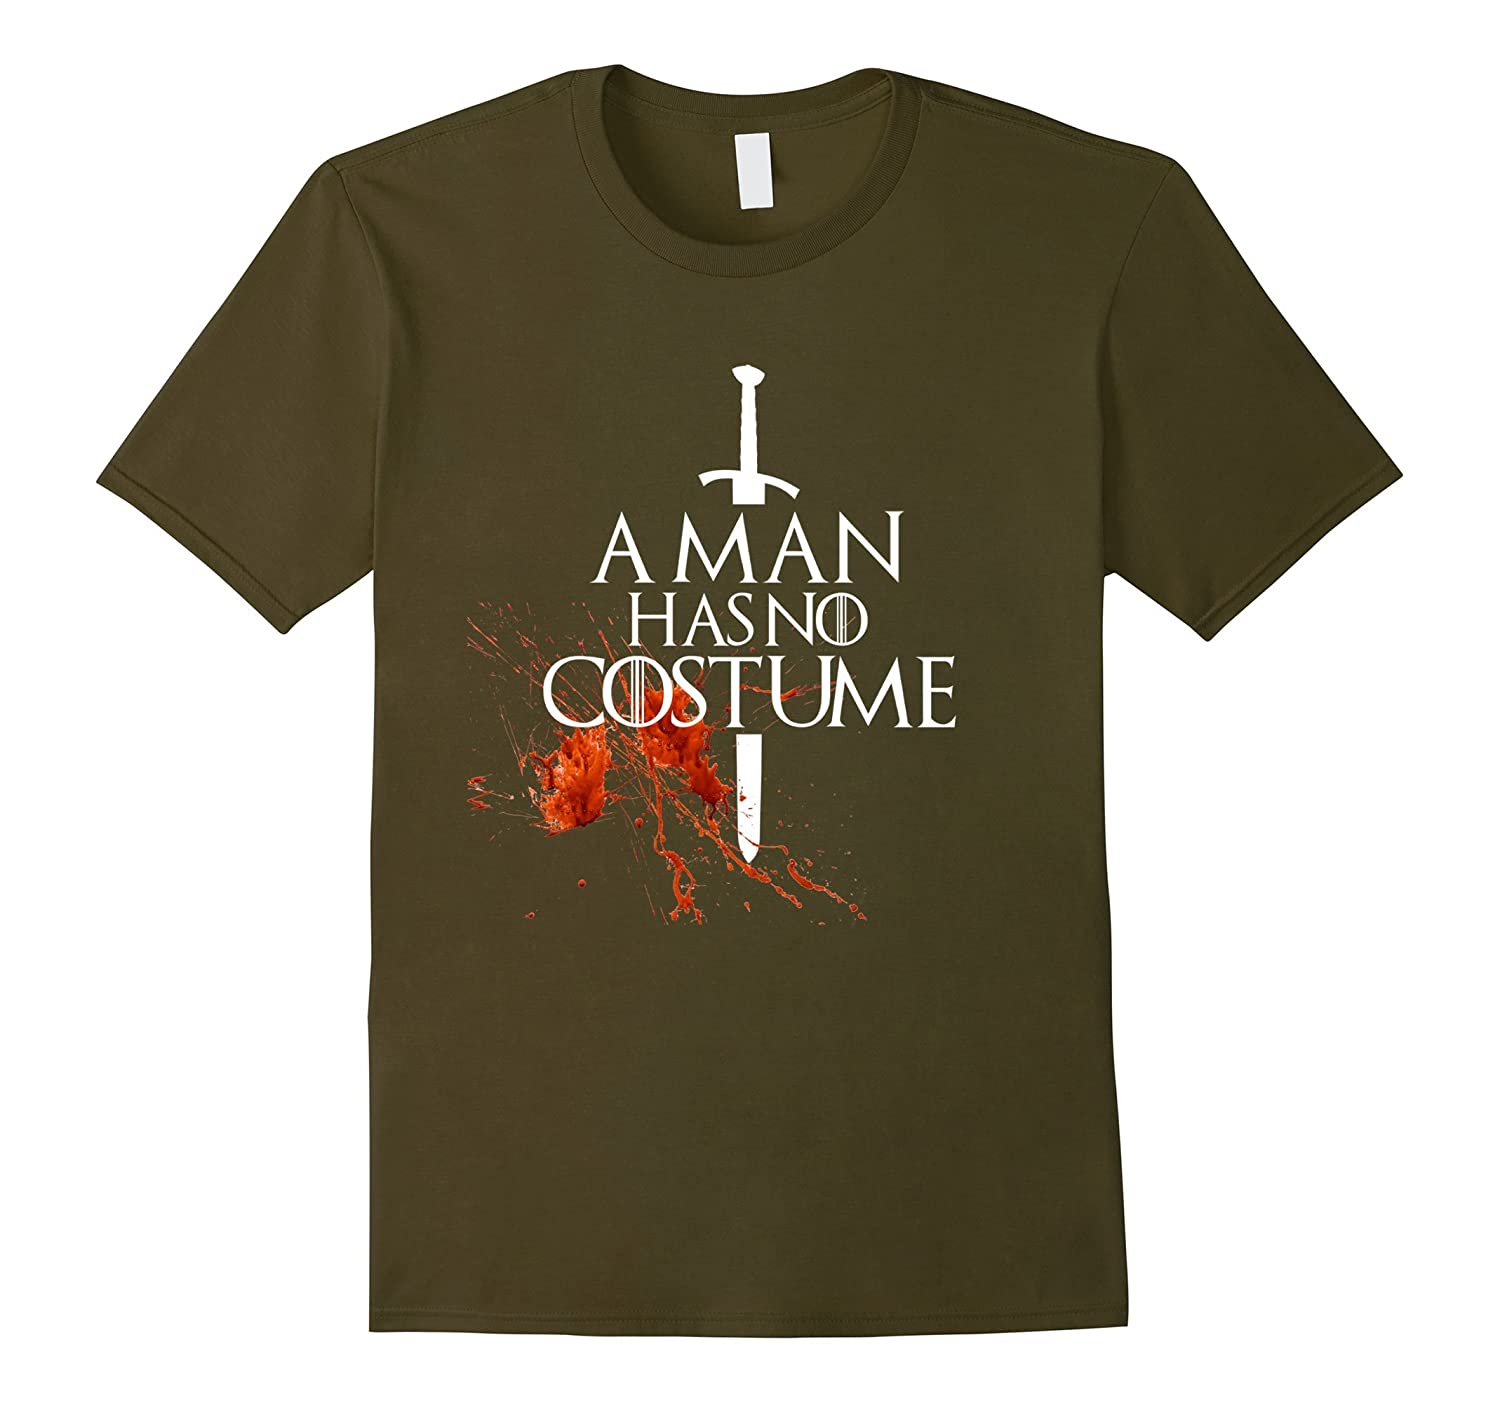 A Man Has No Costume tShirt funny Halloween shirt with Blood-FL